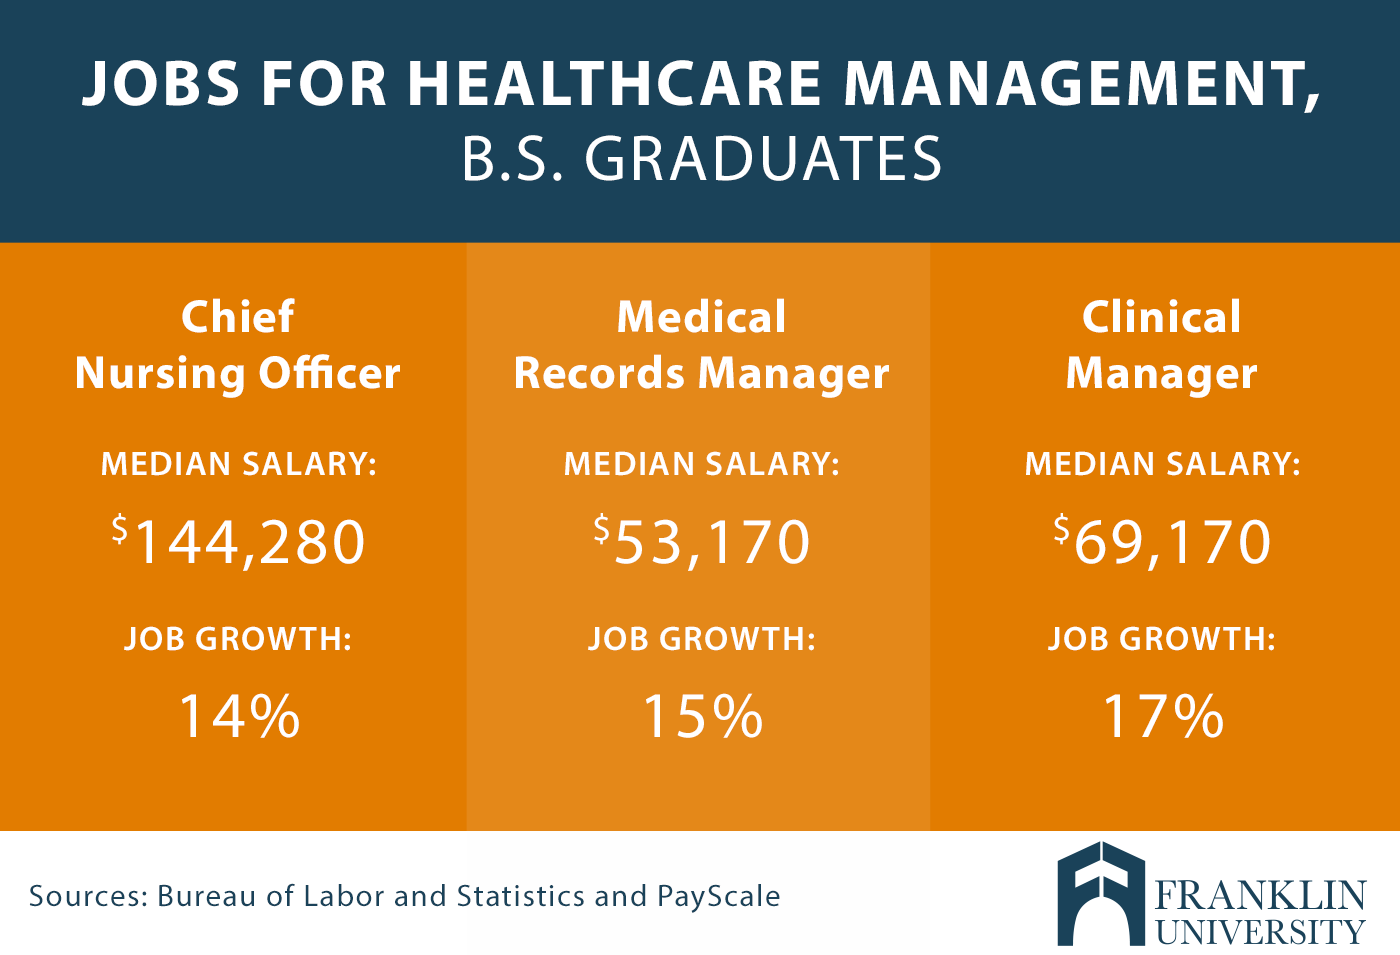 graphic describes jobs for healthcare management for bachelor of science graduates